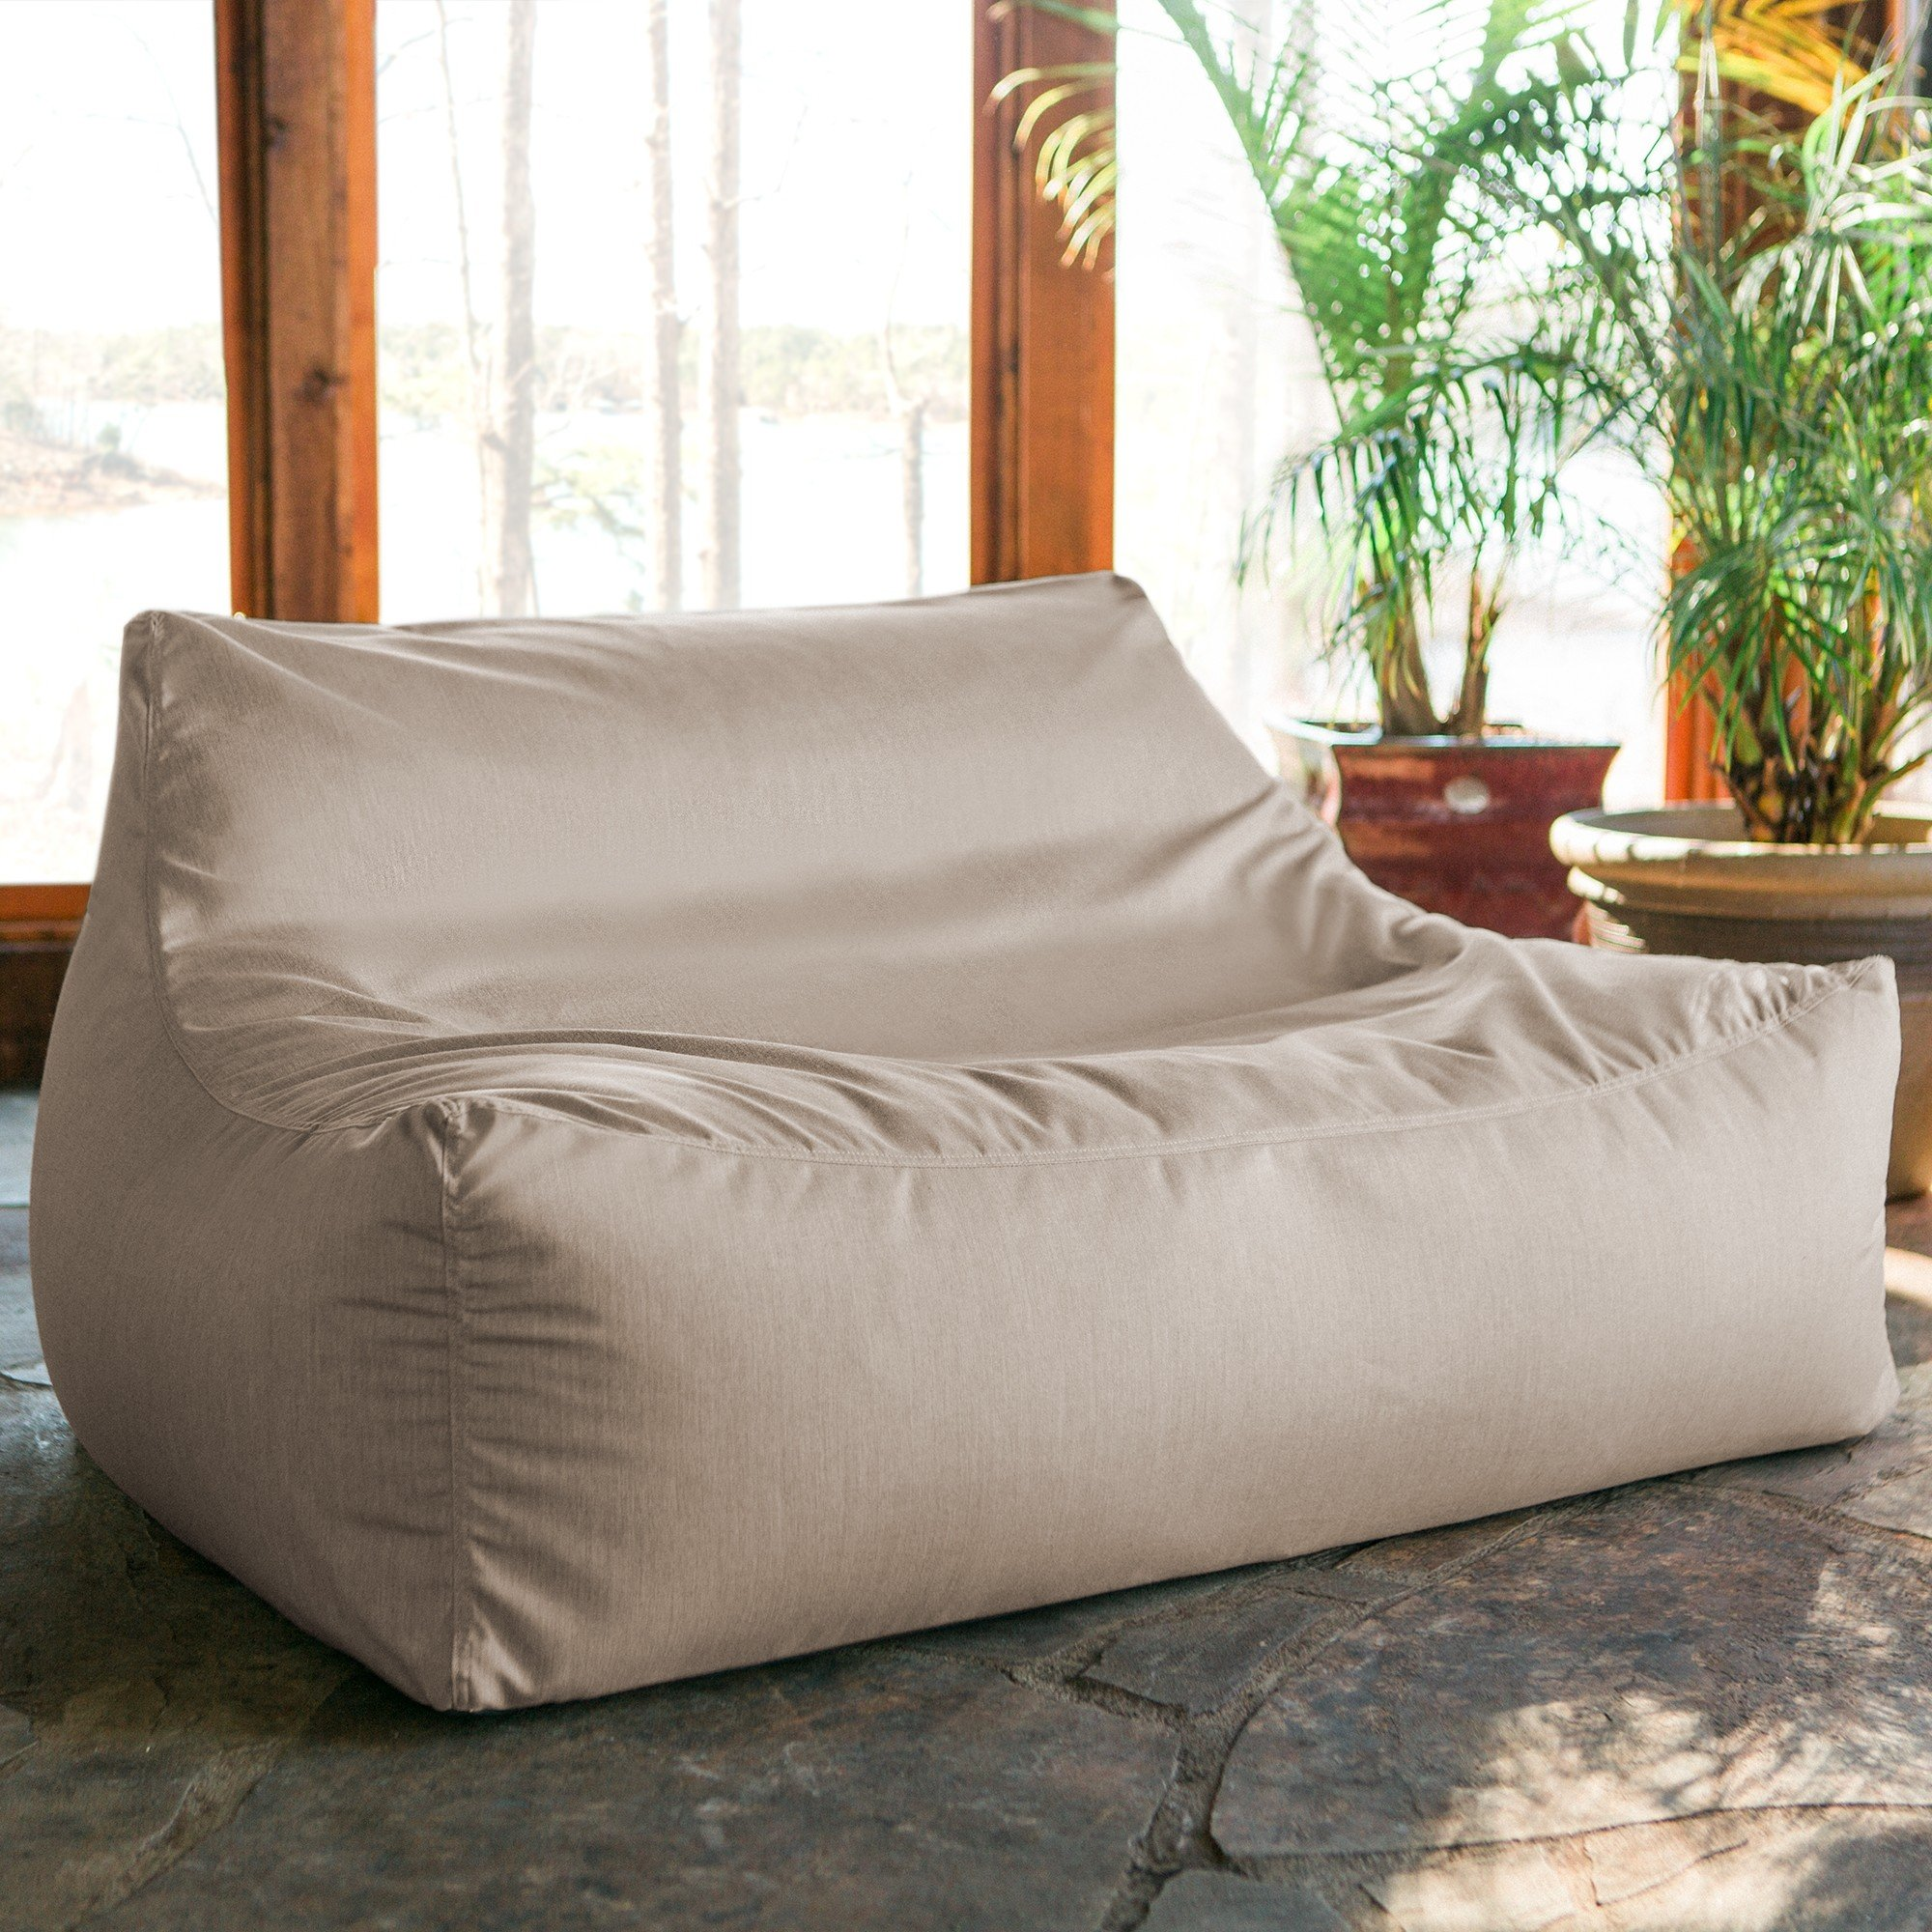 Astounding Lavista Outdoor Bean Bag Loveseat Flax Ocoug Best Dining Table And Chair Ideas Images Ocougorg